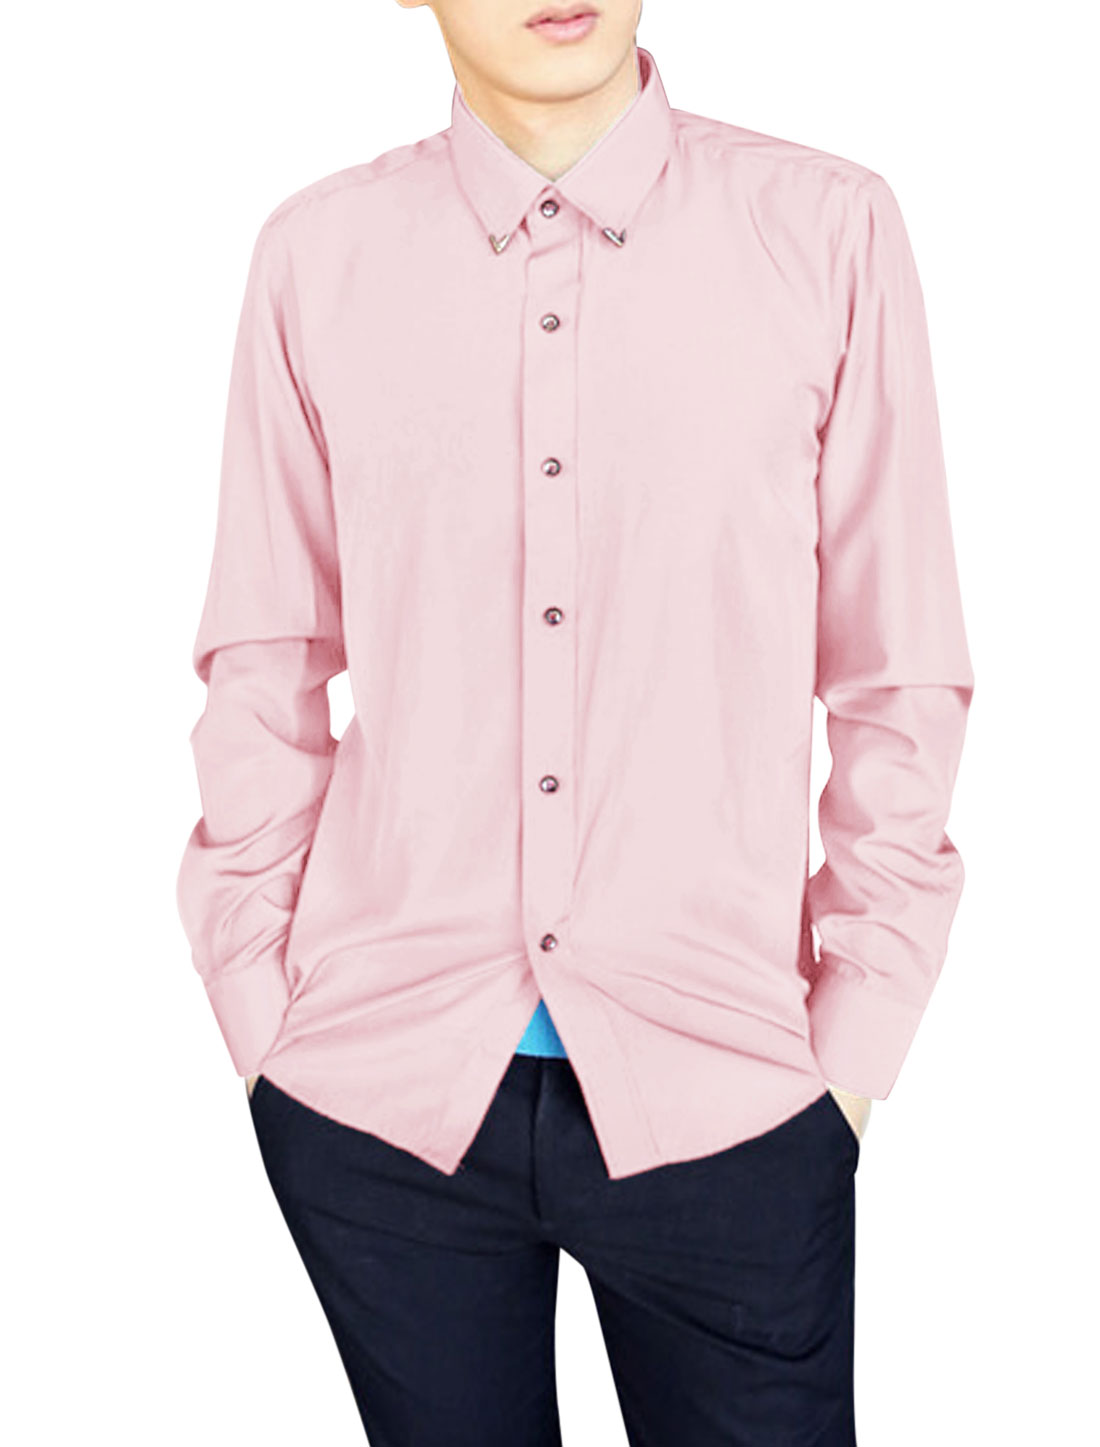 Men Single Breasted Fashionable Leisure Shirt Light Pink M